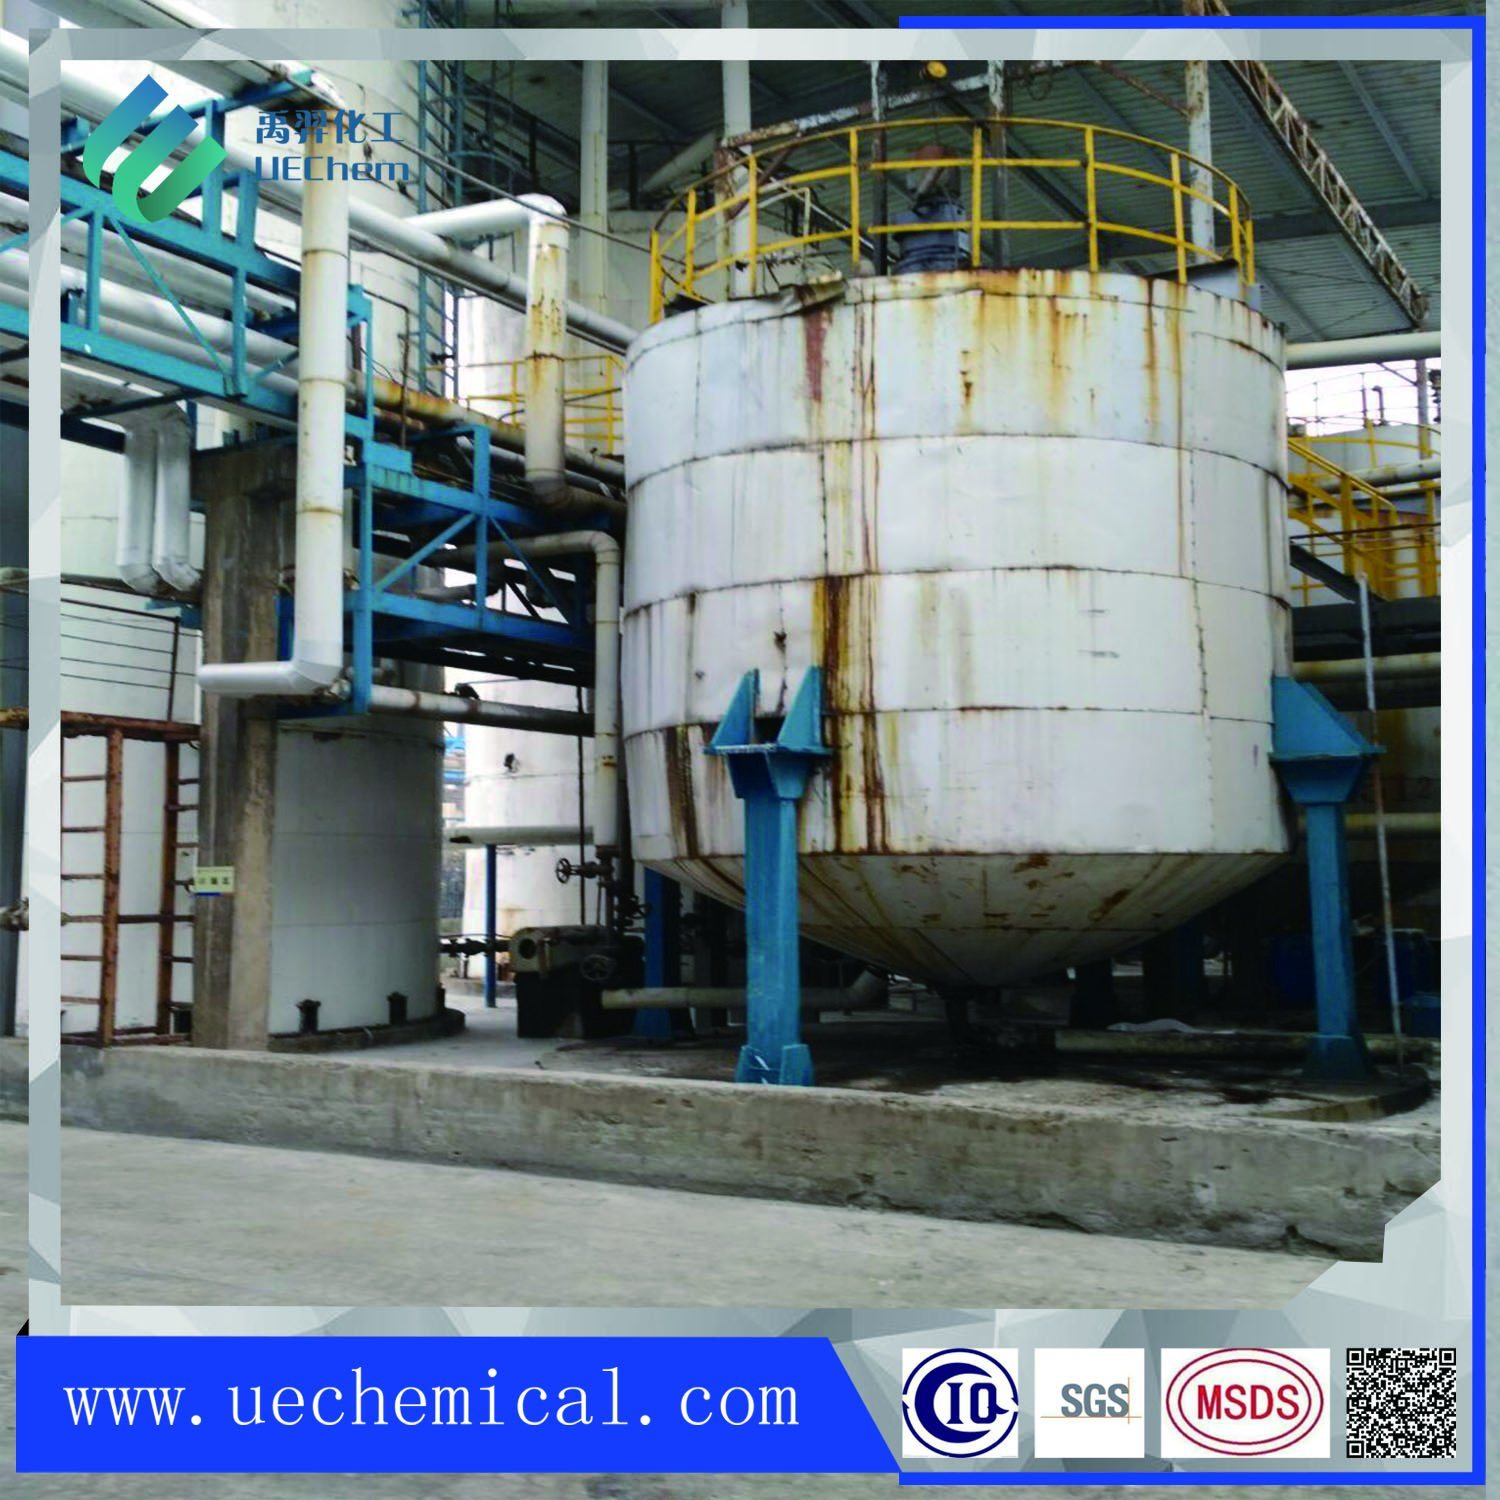 China Factory Price of Color Speckles for Detergent